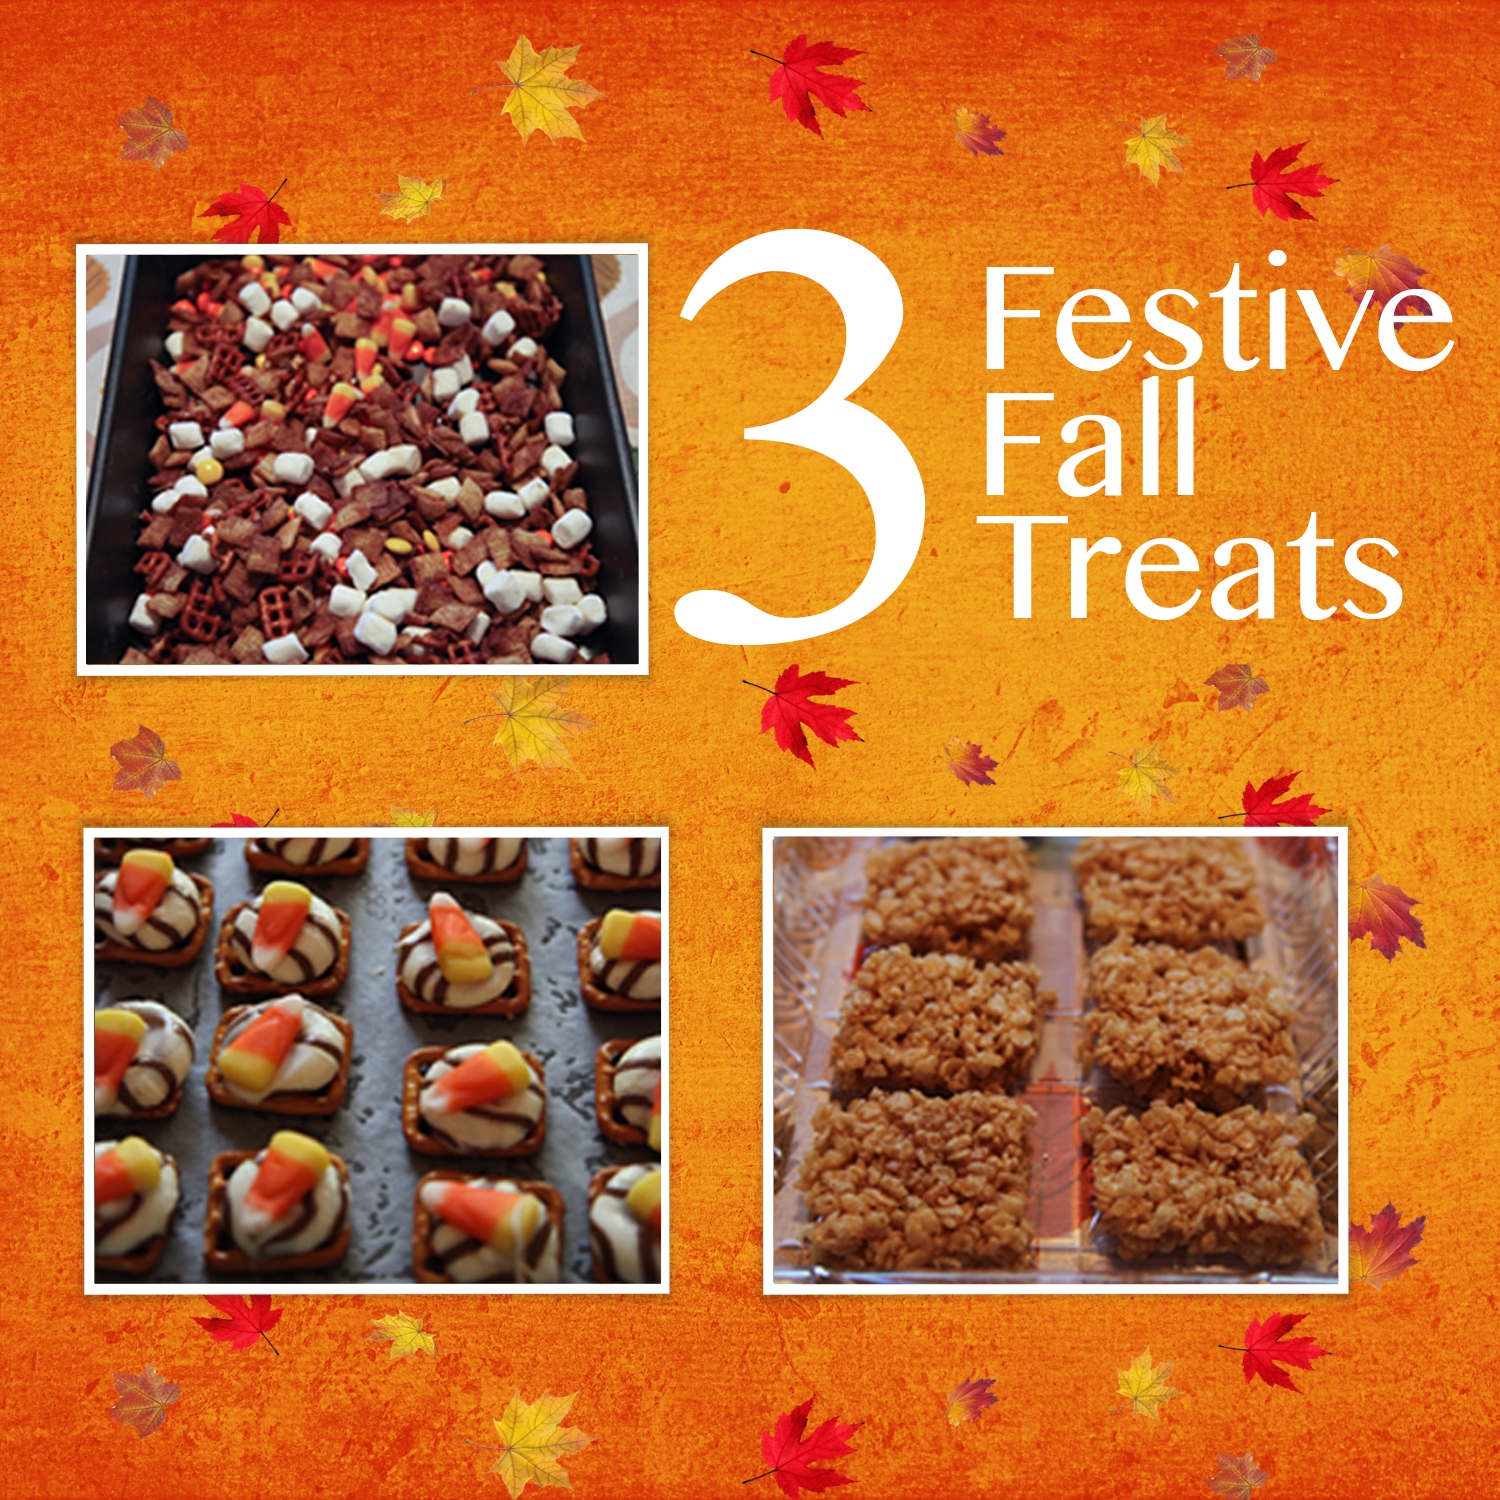 Festive Fall Treats